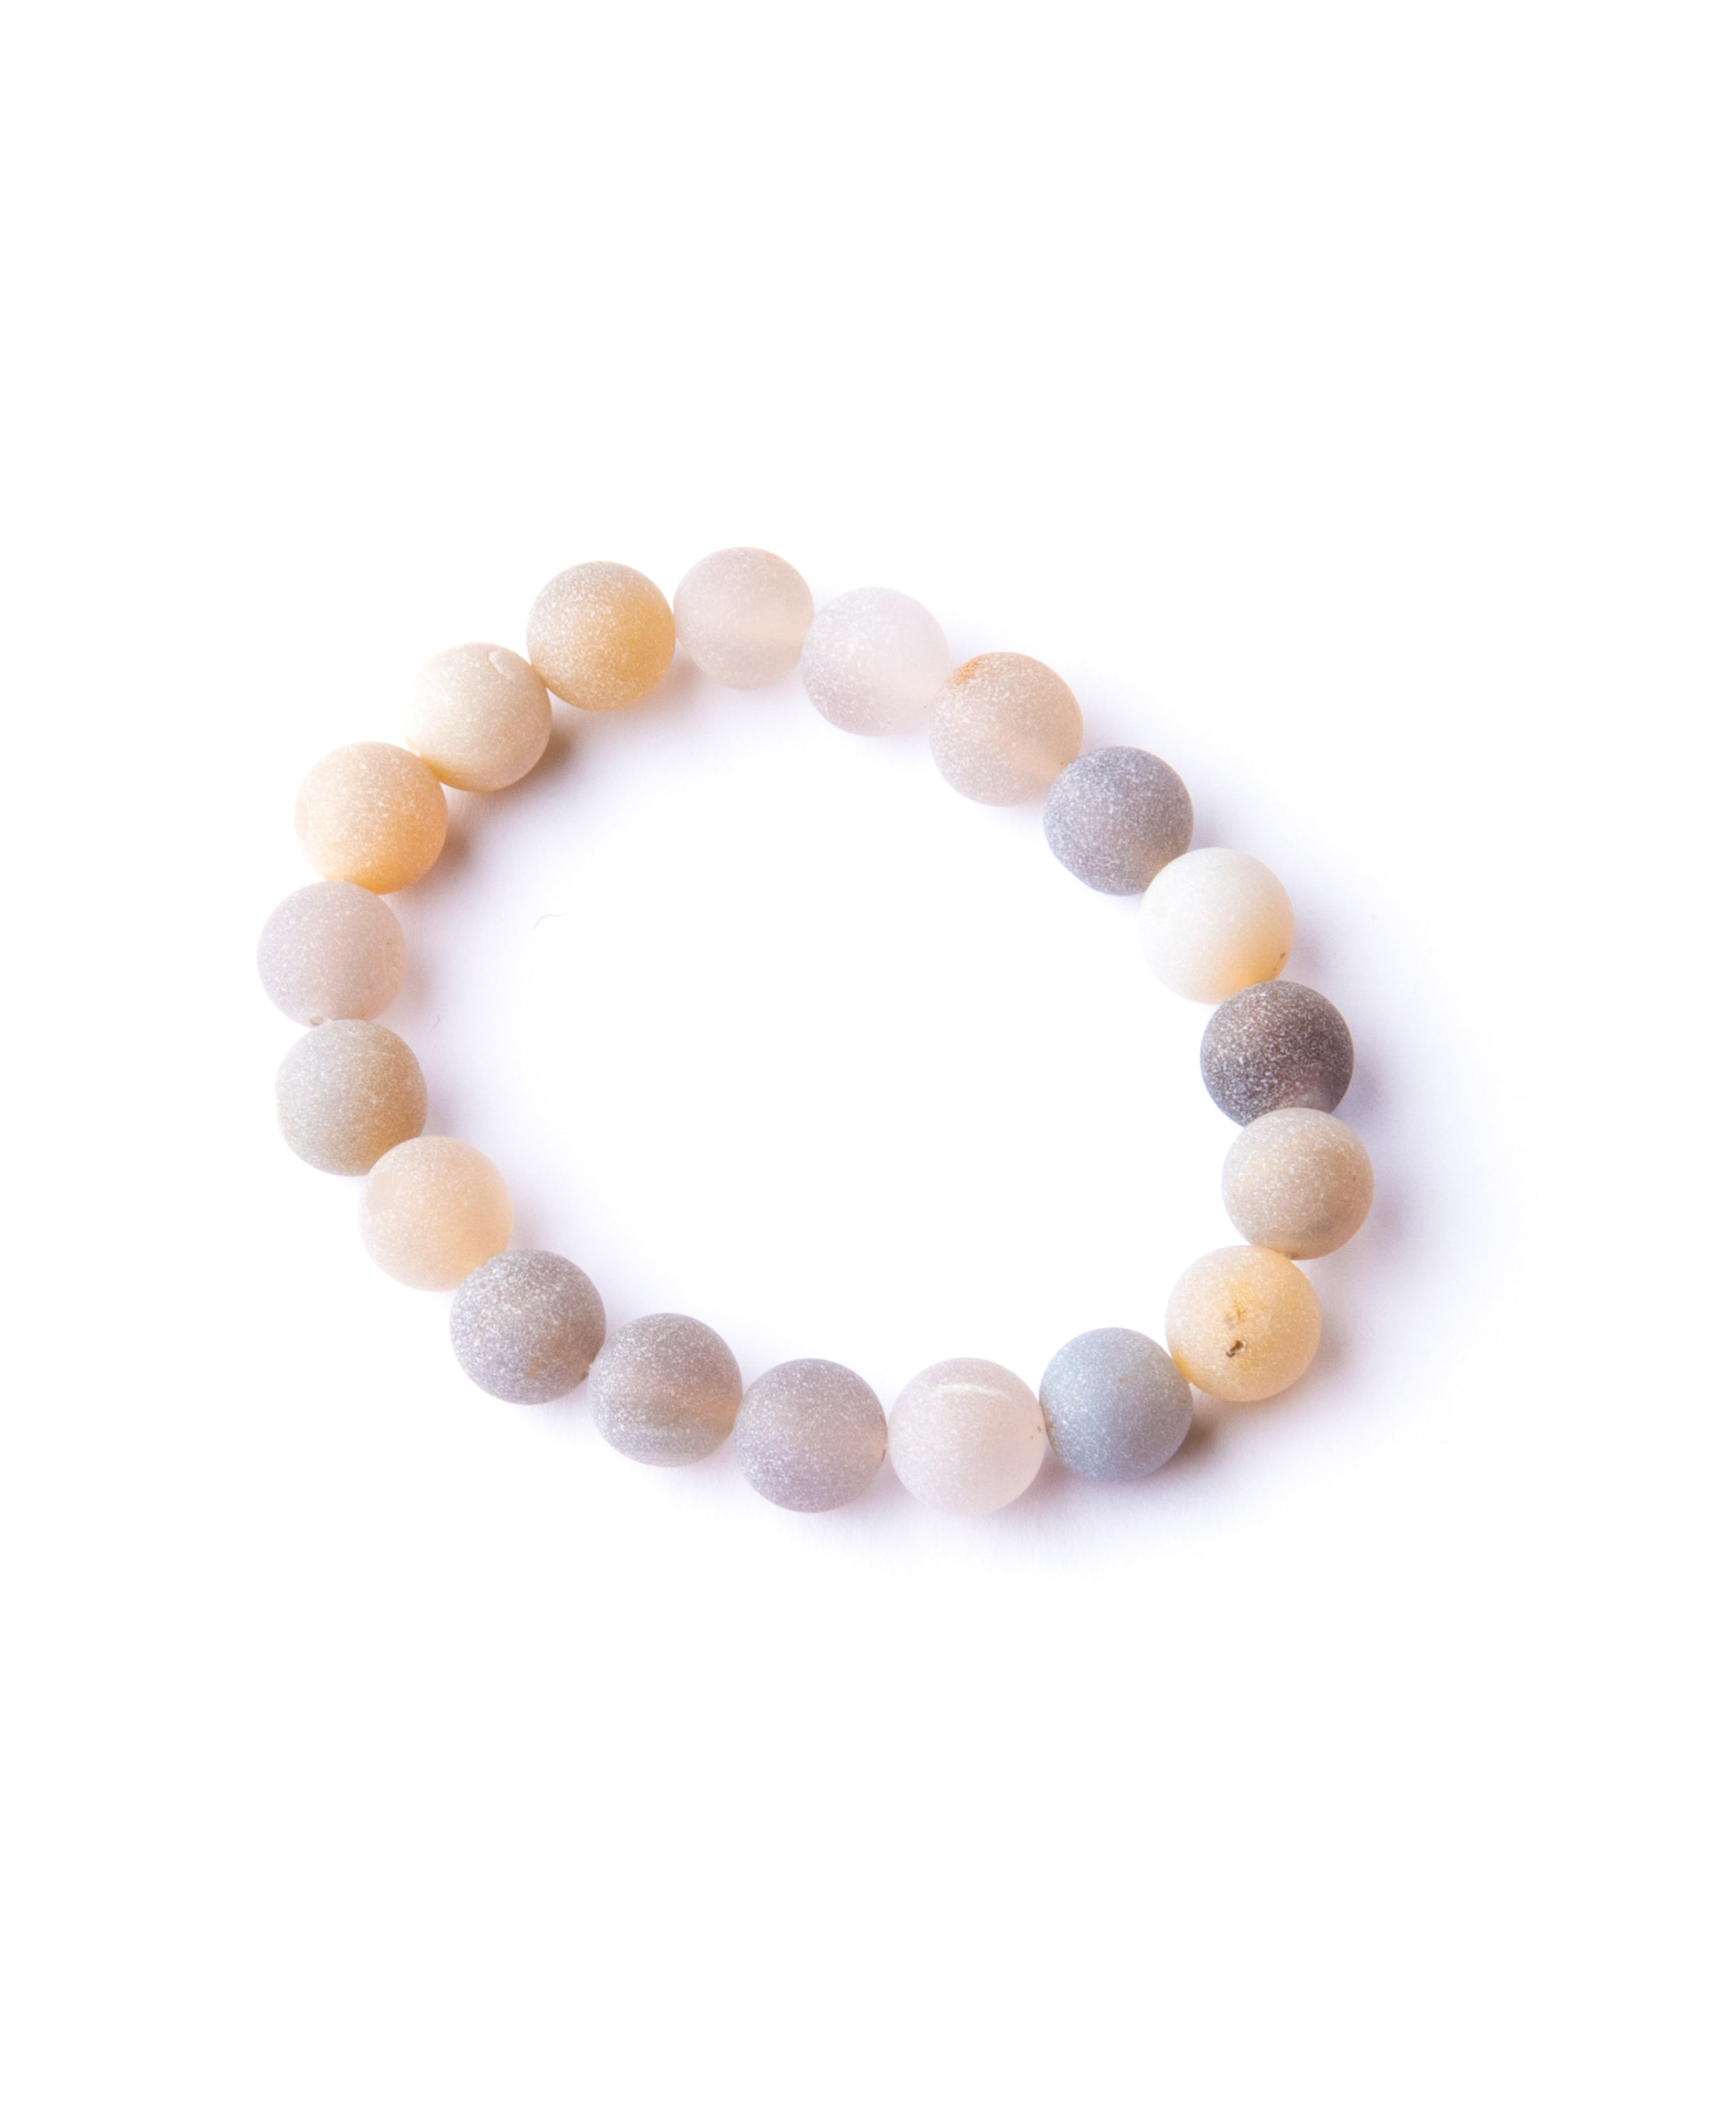 Grey Stone Bracelet | Accessories | Bailey Nicole - Women's Clothes for All Occasions